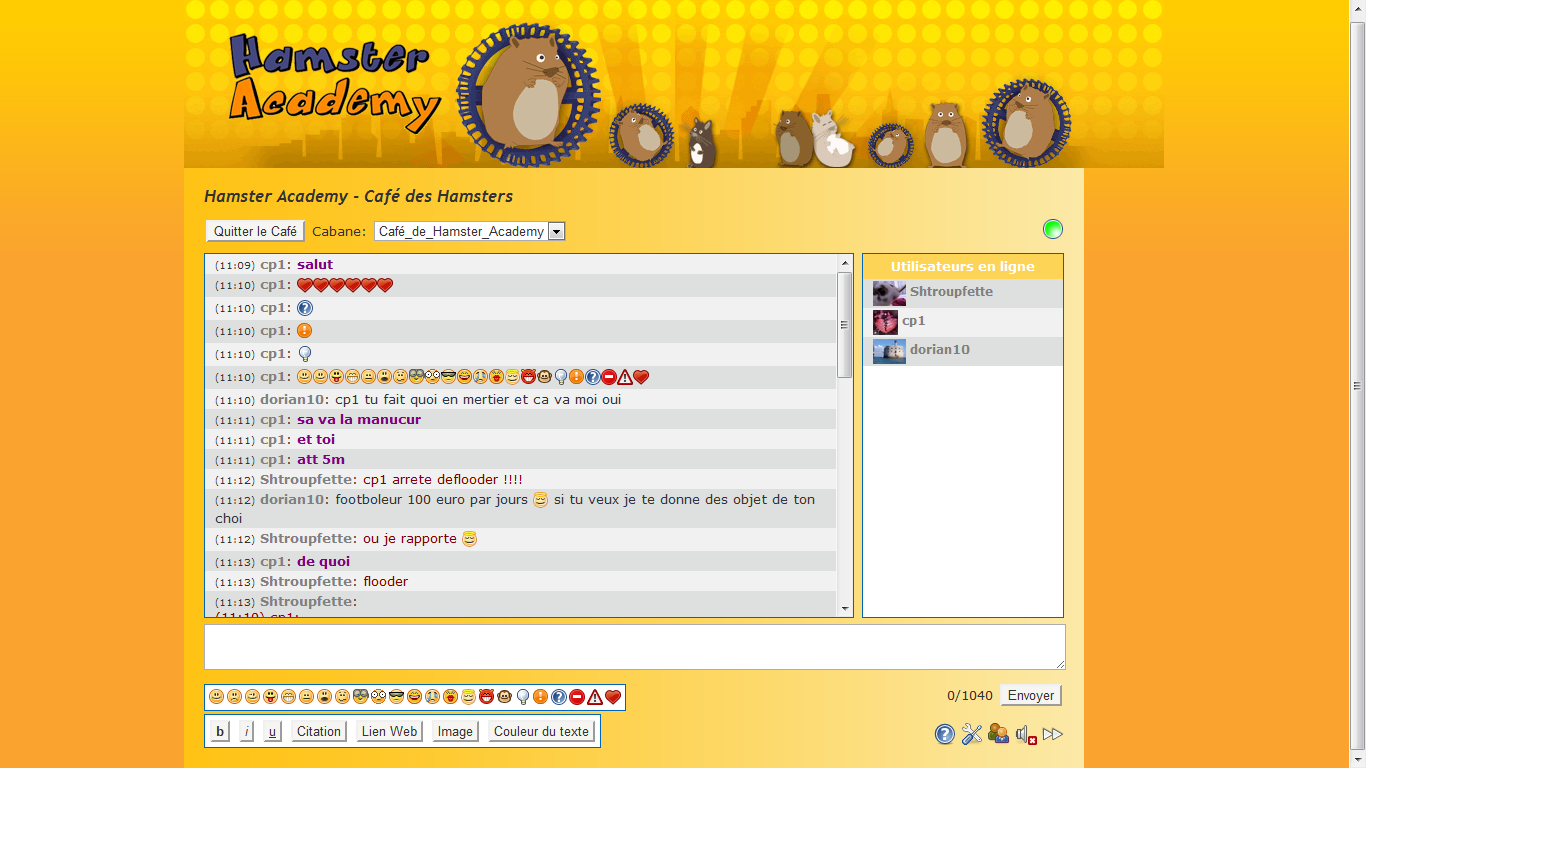 http://www.hamsteracademy.fr/forum/uploads/296899_flood.png